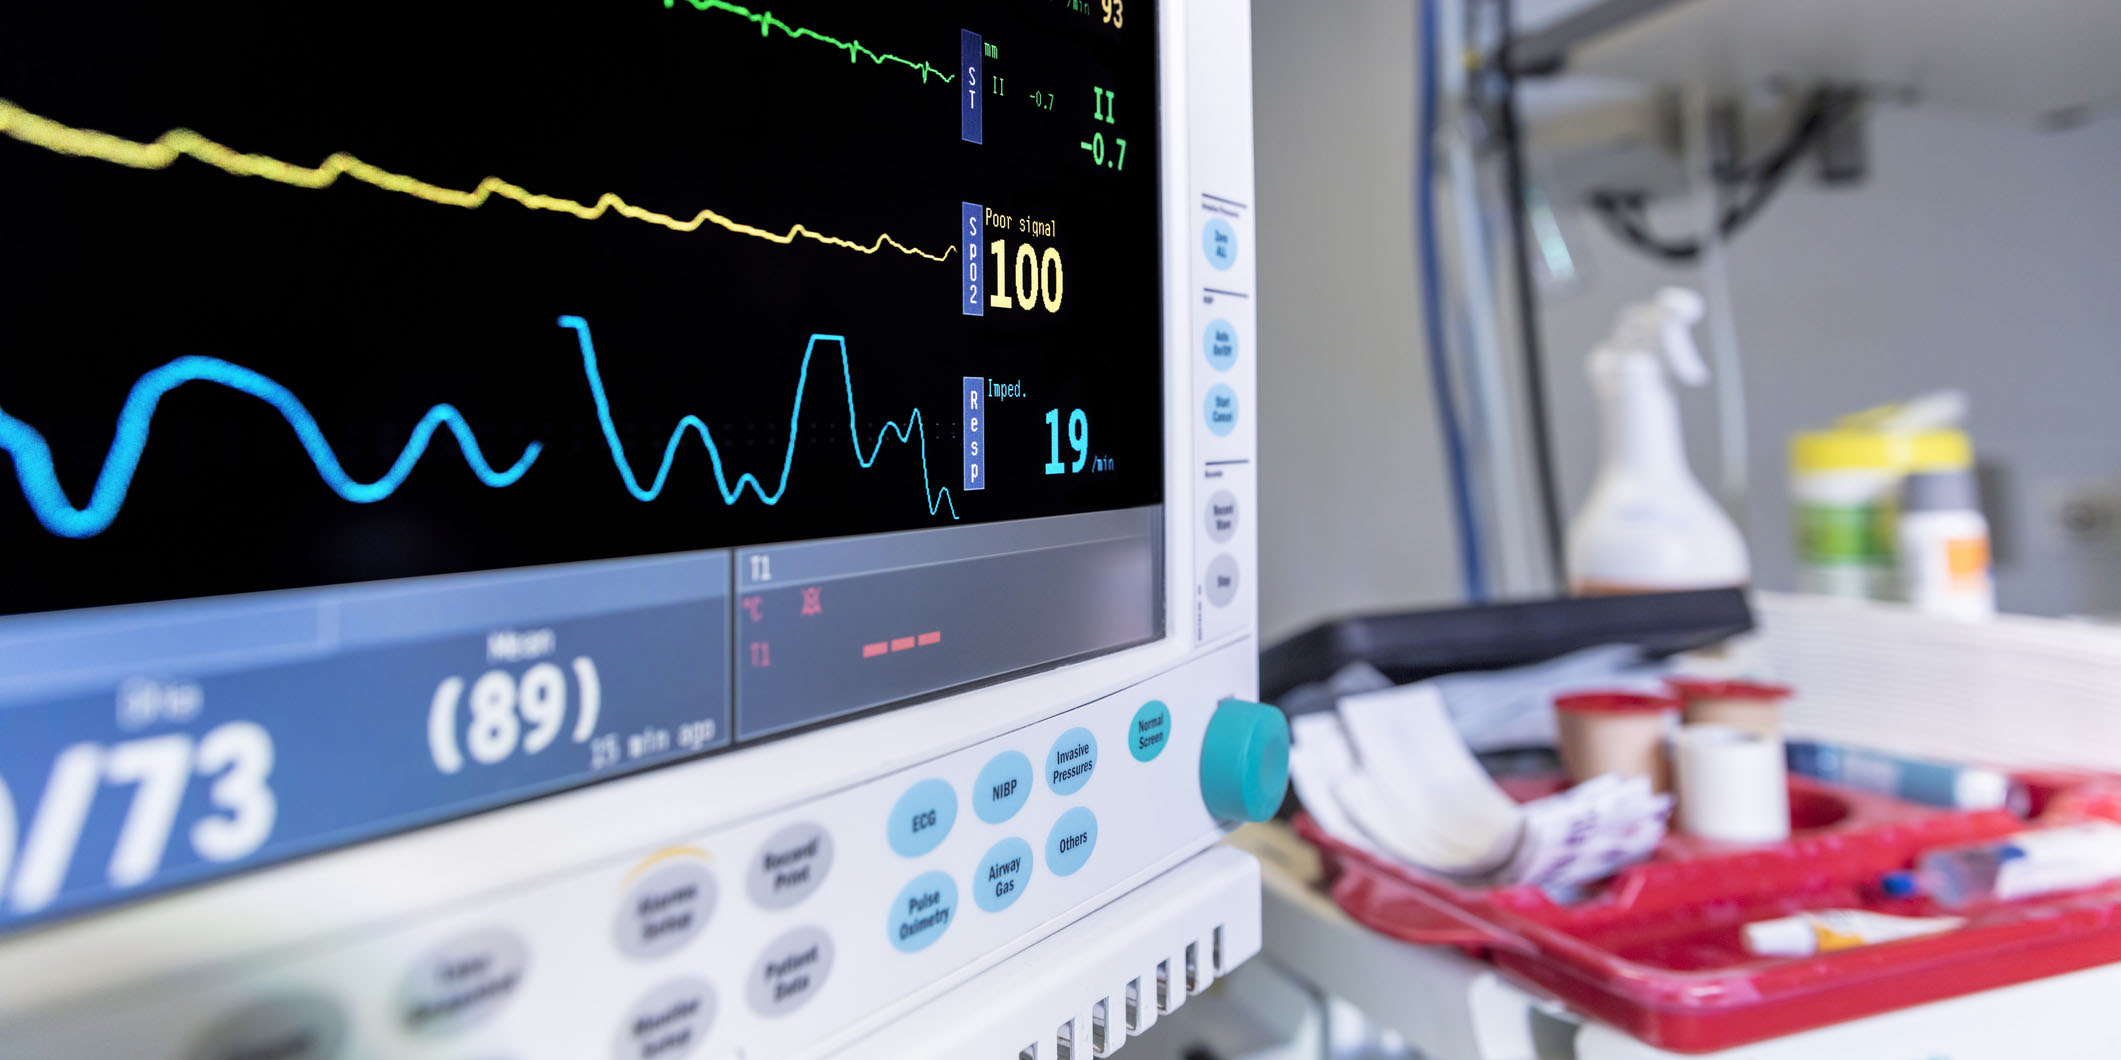 New risk test for sepsis for heart patients